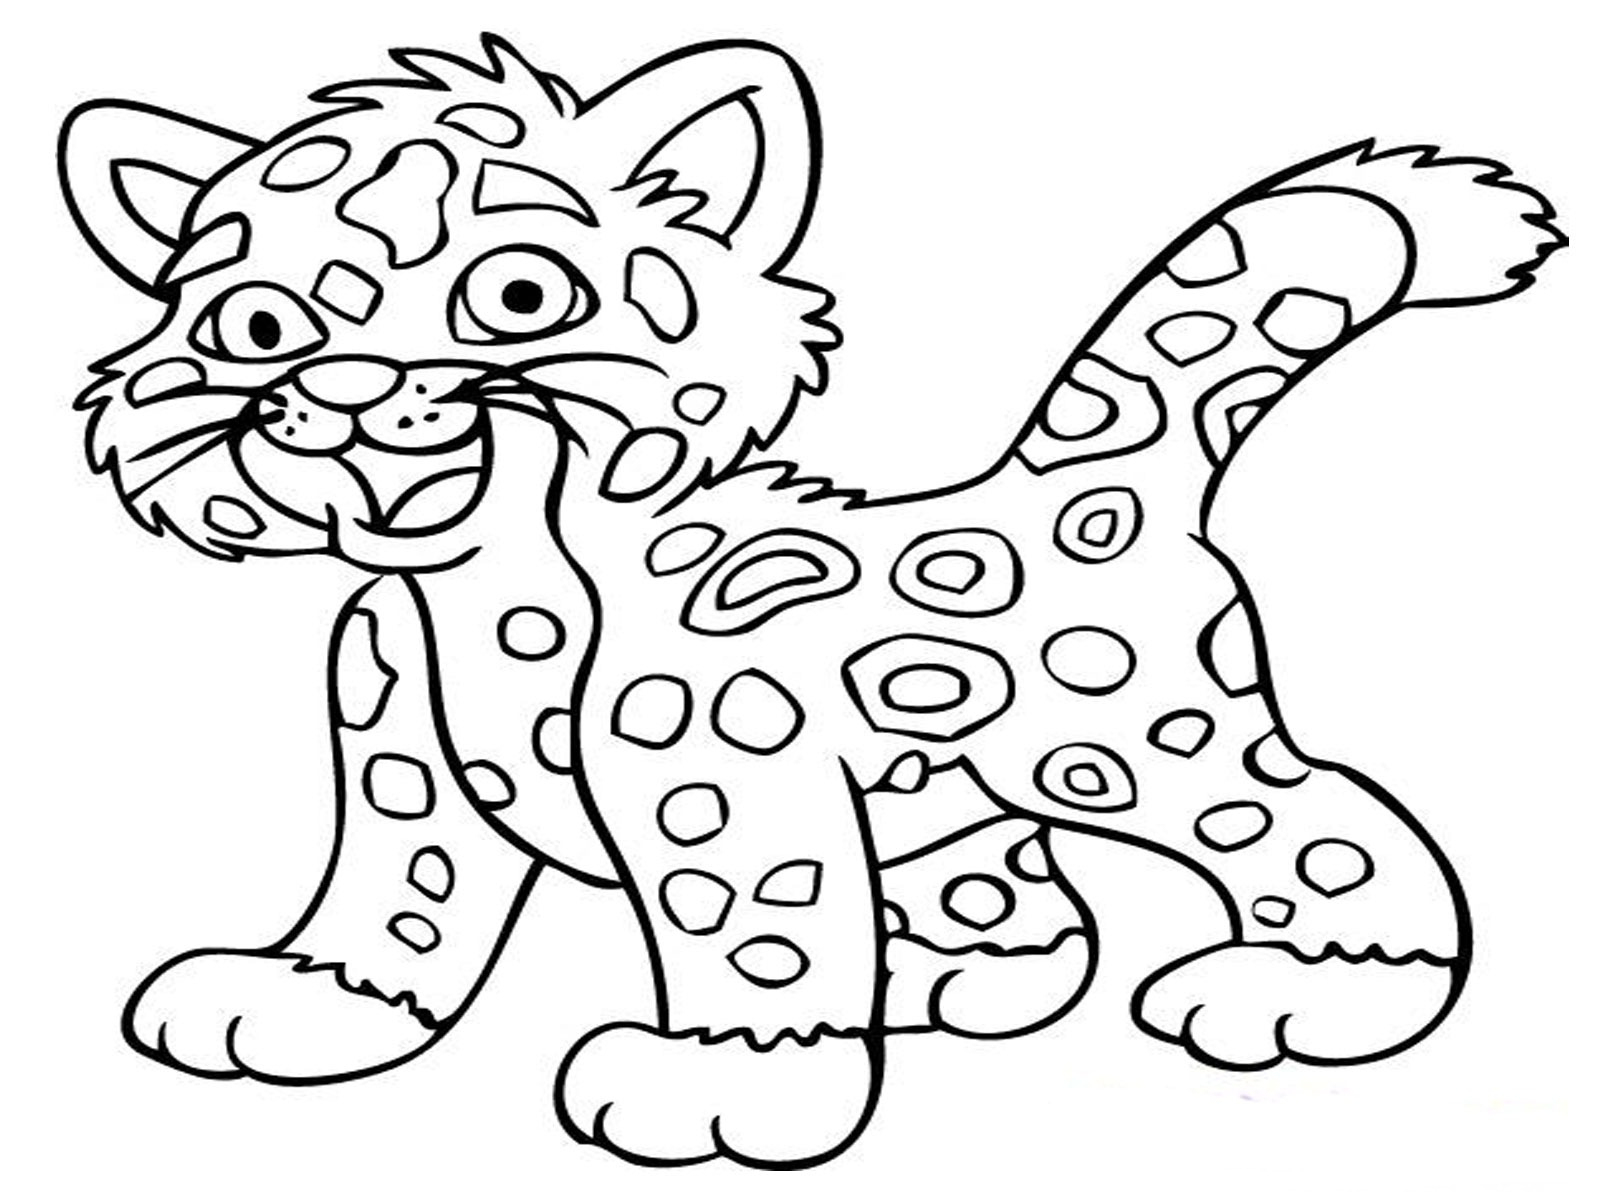 New Coloring Book Pages Of Animals Nice Design #30520 - Free Coloring Pages Animals Printable